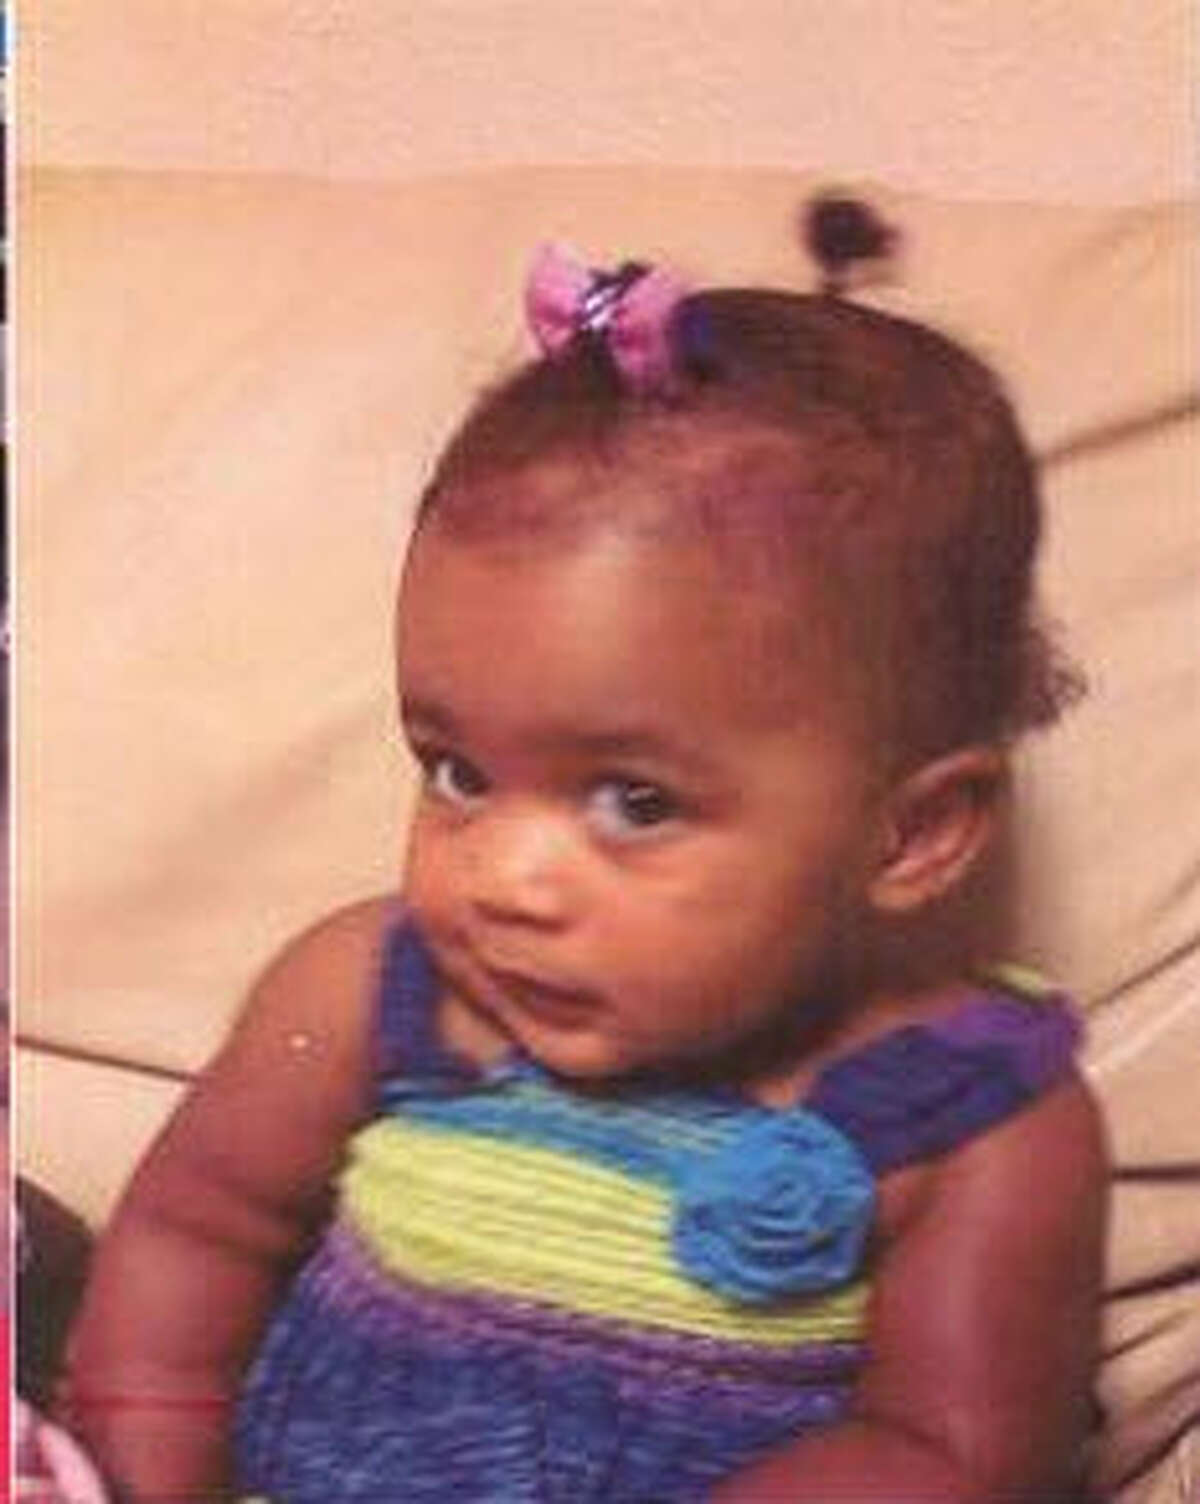 An Amber Alert has been issued for Gracelyn Chachere, 1, who was last seen in Houston on Nov. 23, 2016.